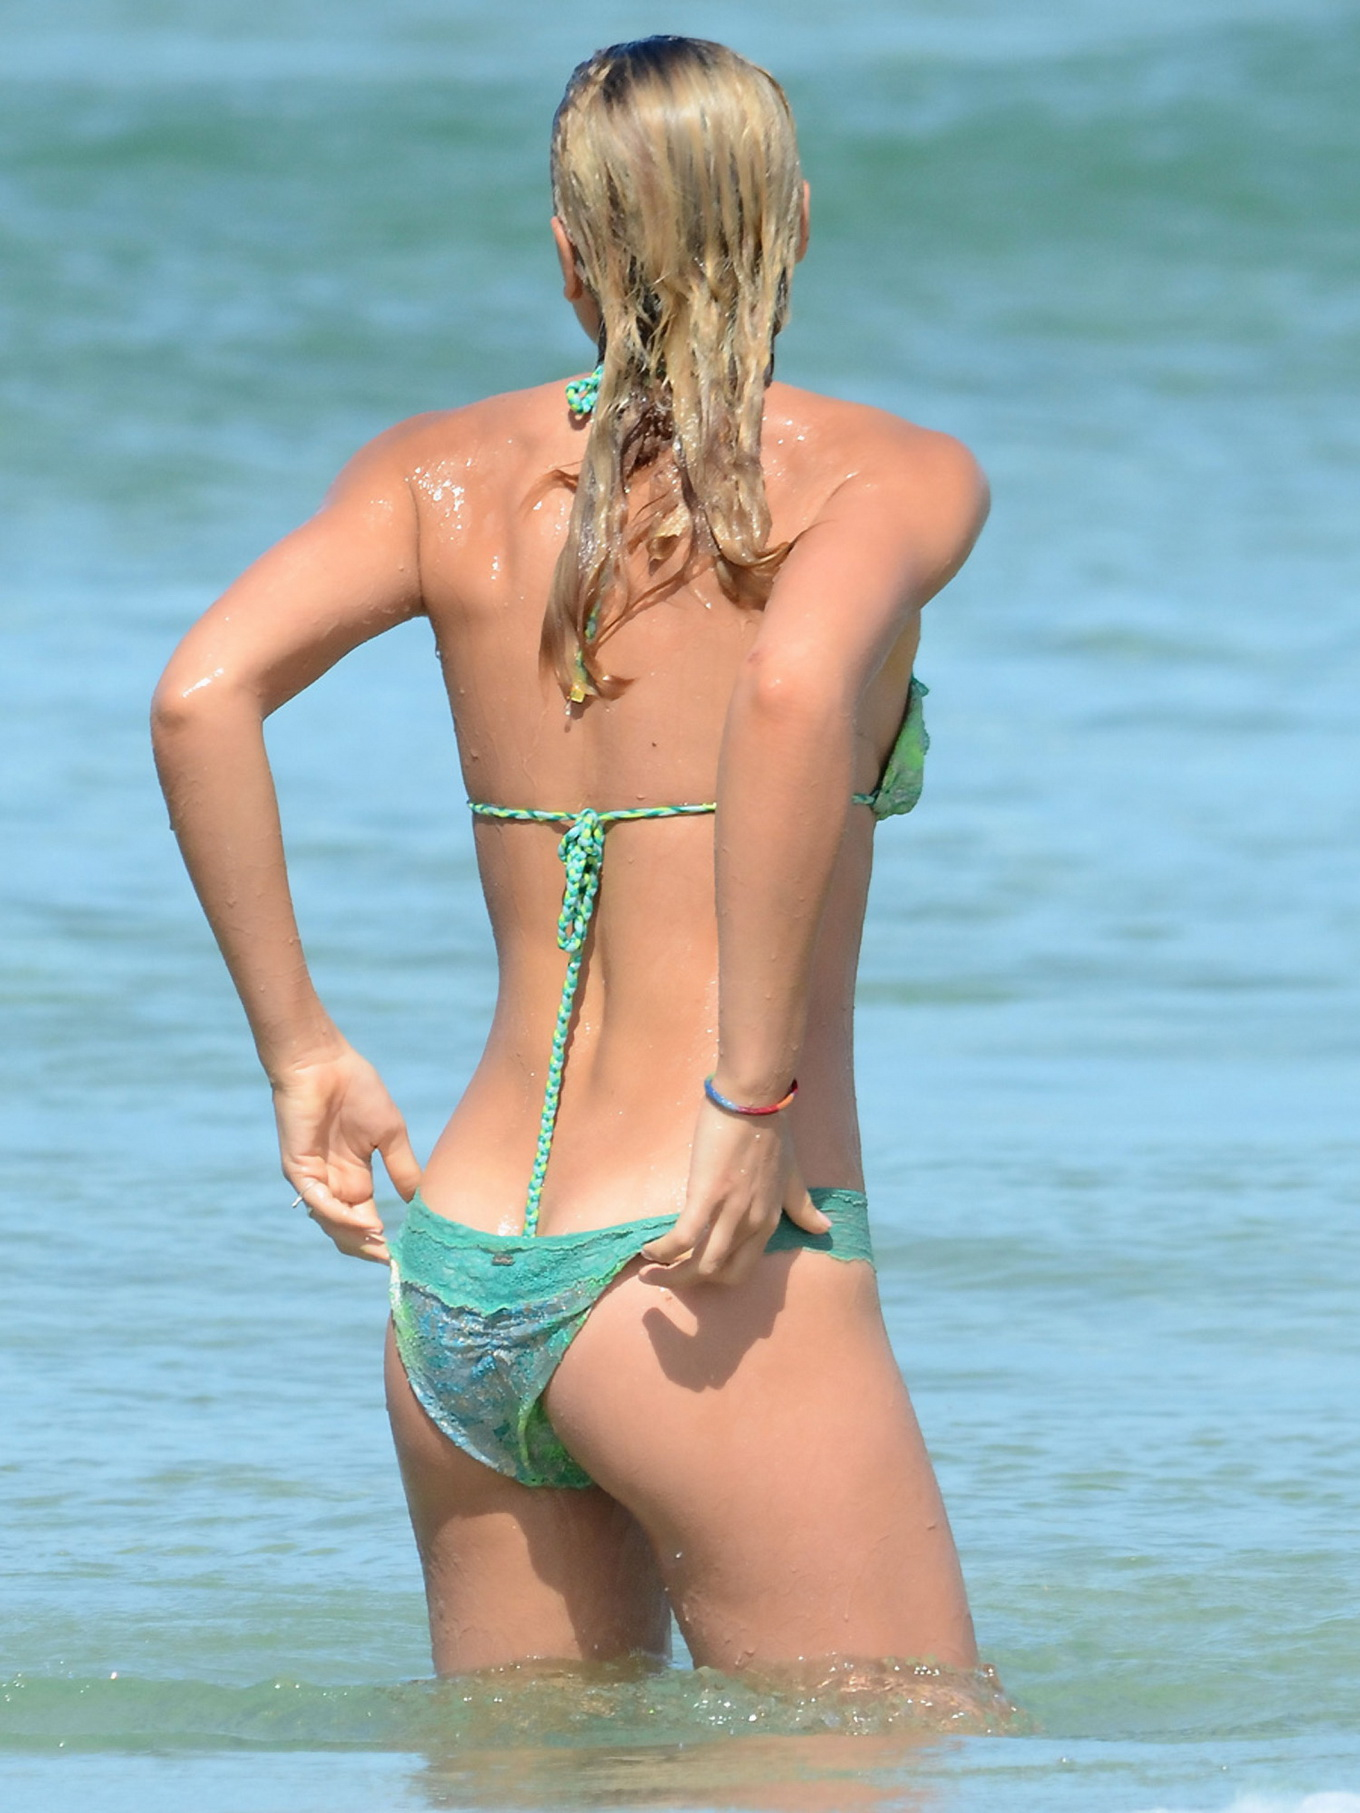 ashley hart showing off her bikini body on a bondy beach in sydney